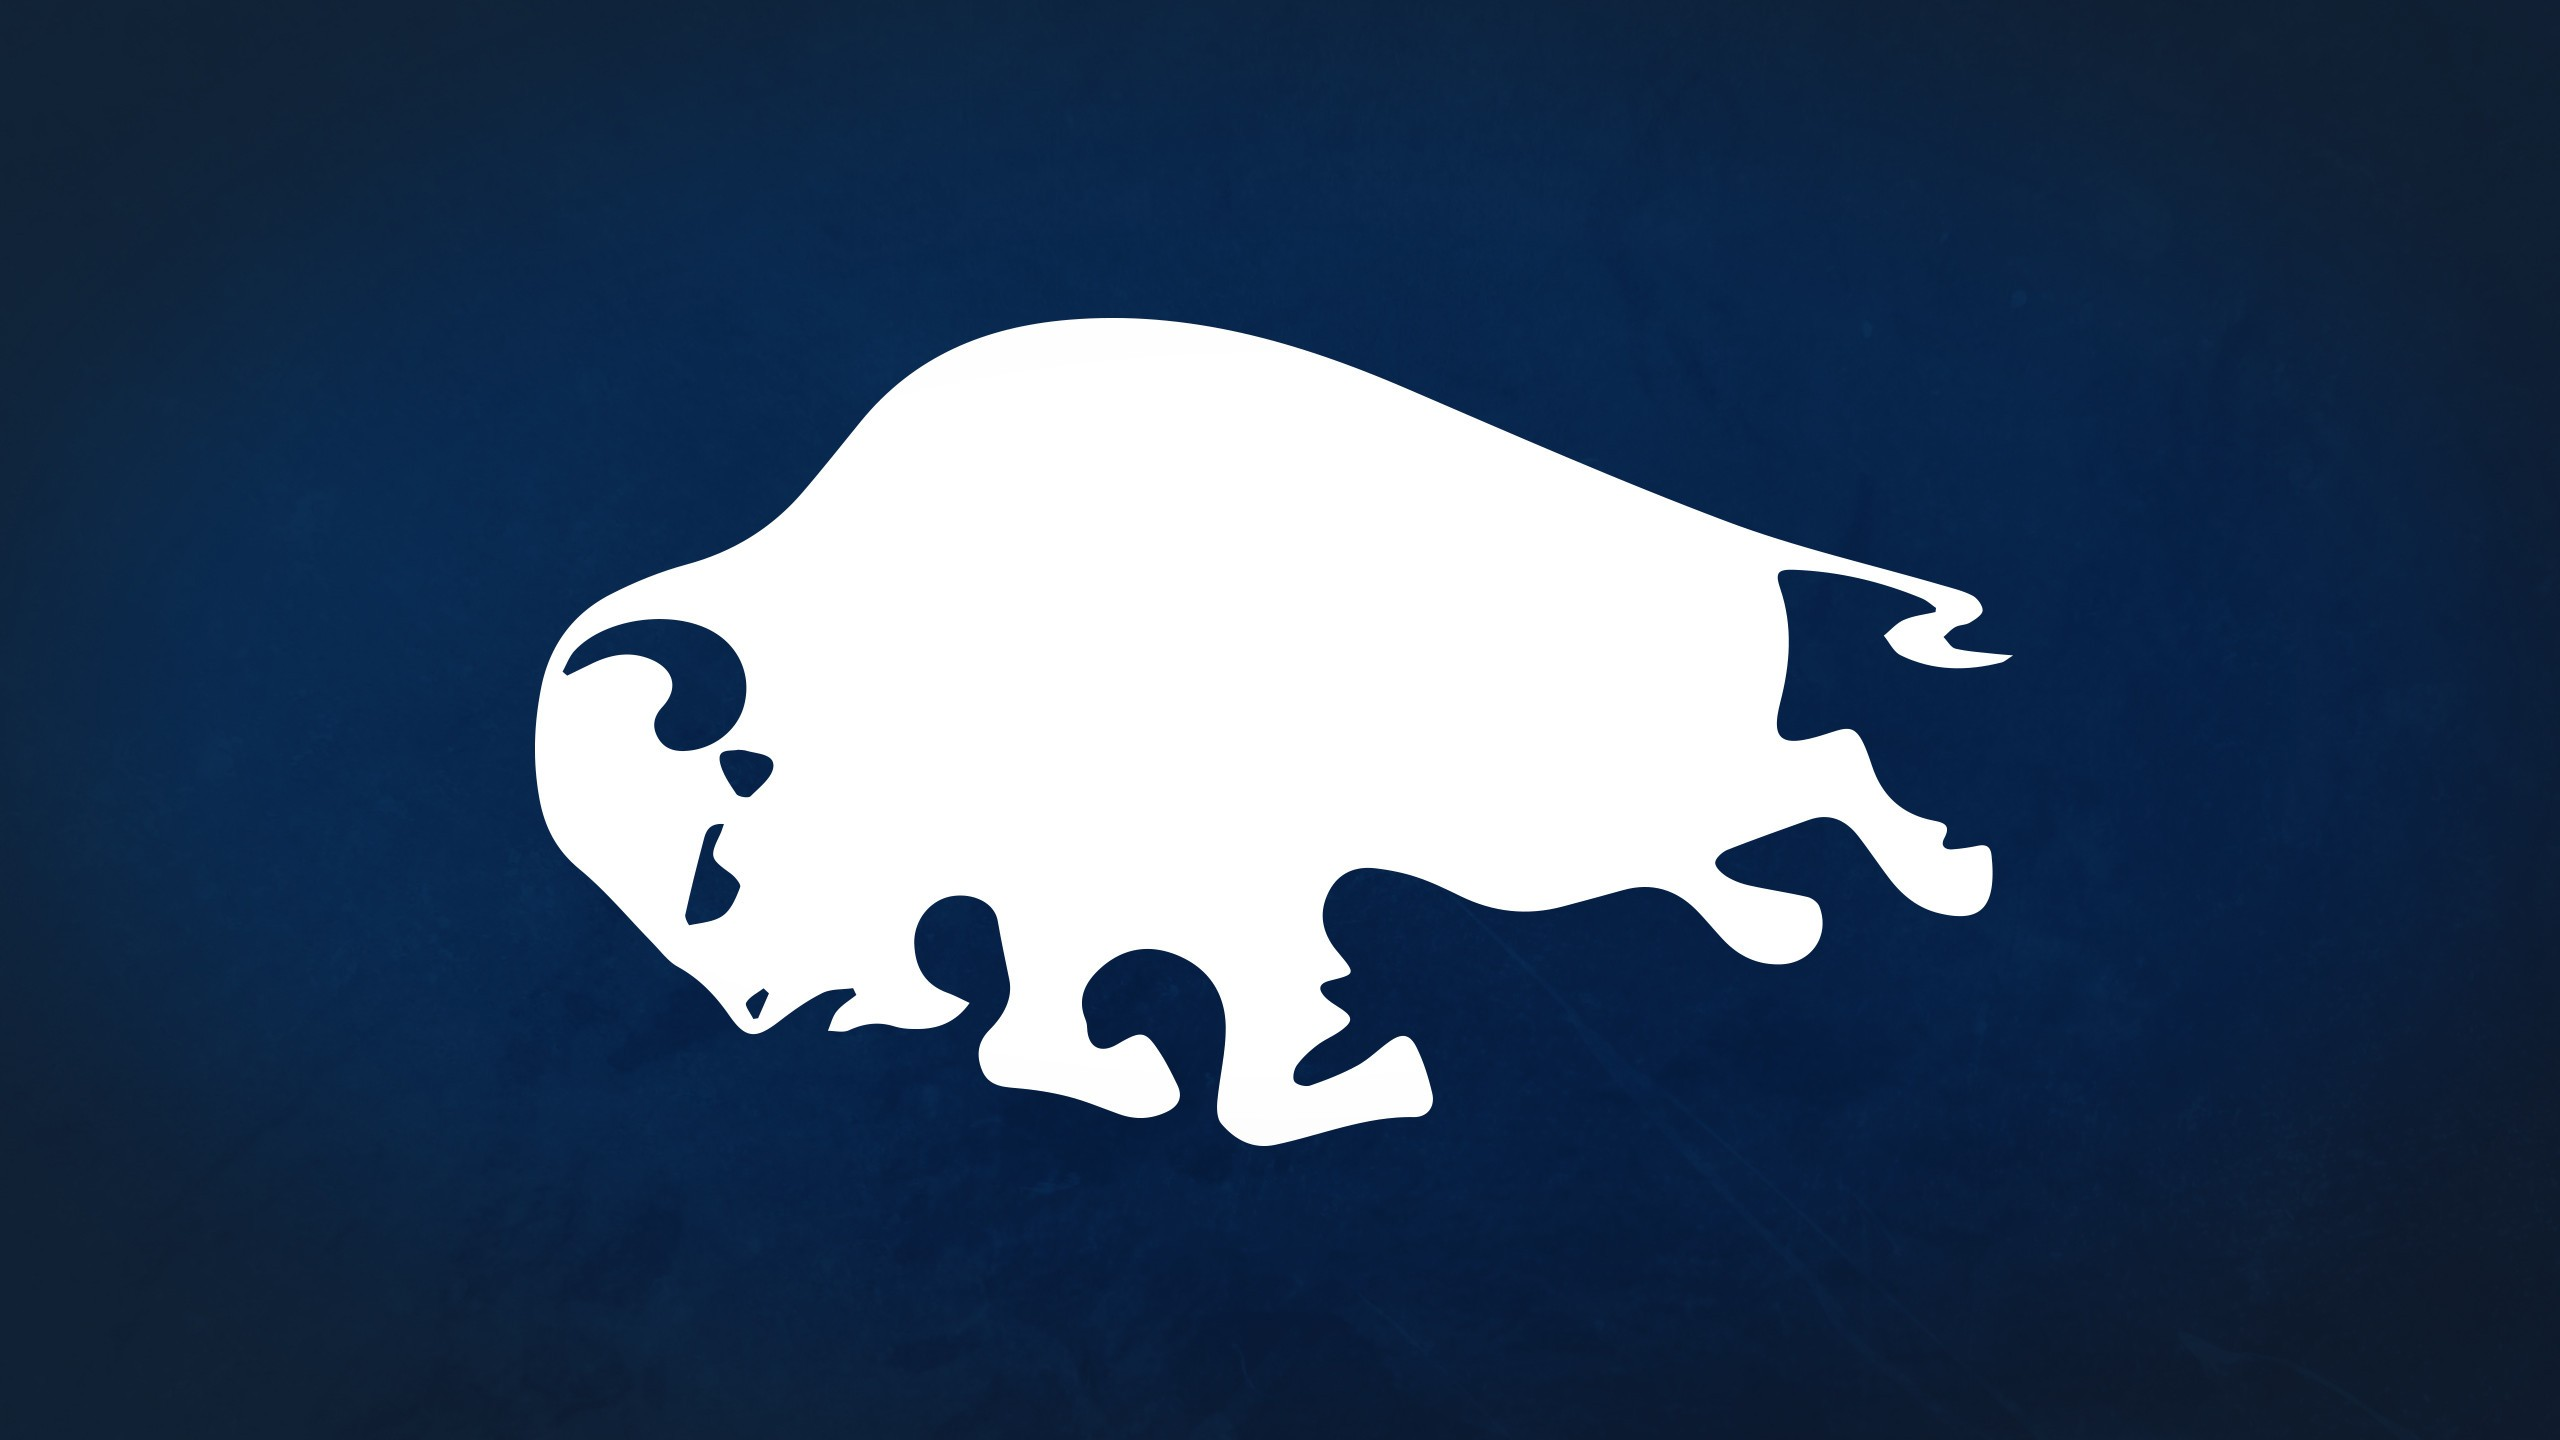 Buffalo Sabres HD Wallpaper Background Image 2560x1440 ID 2560x1440